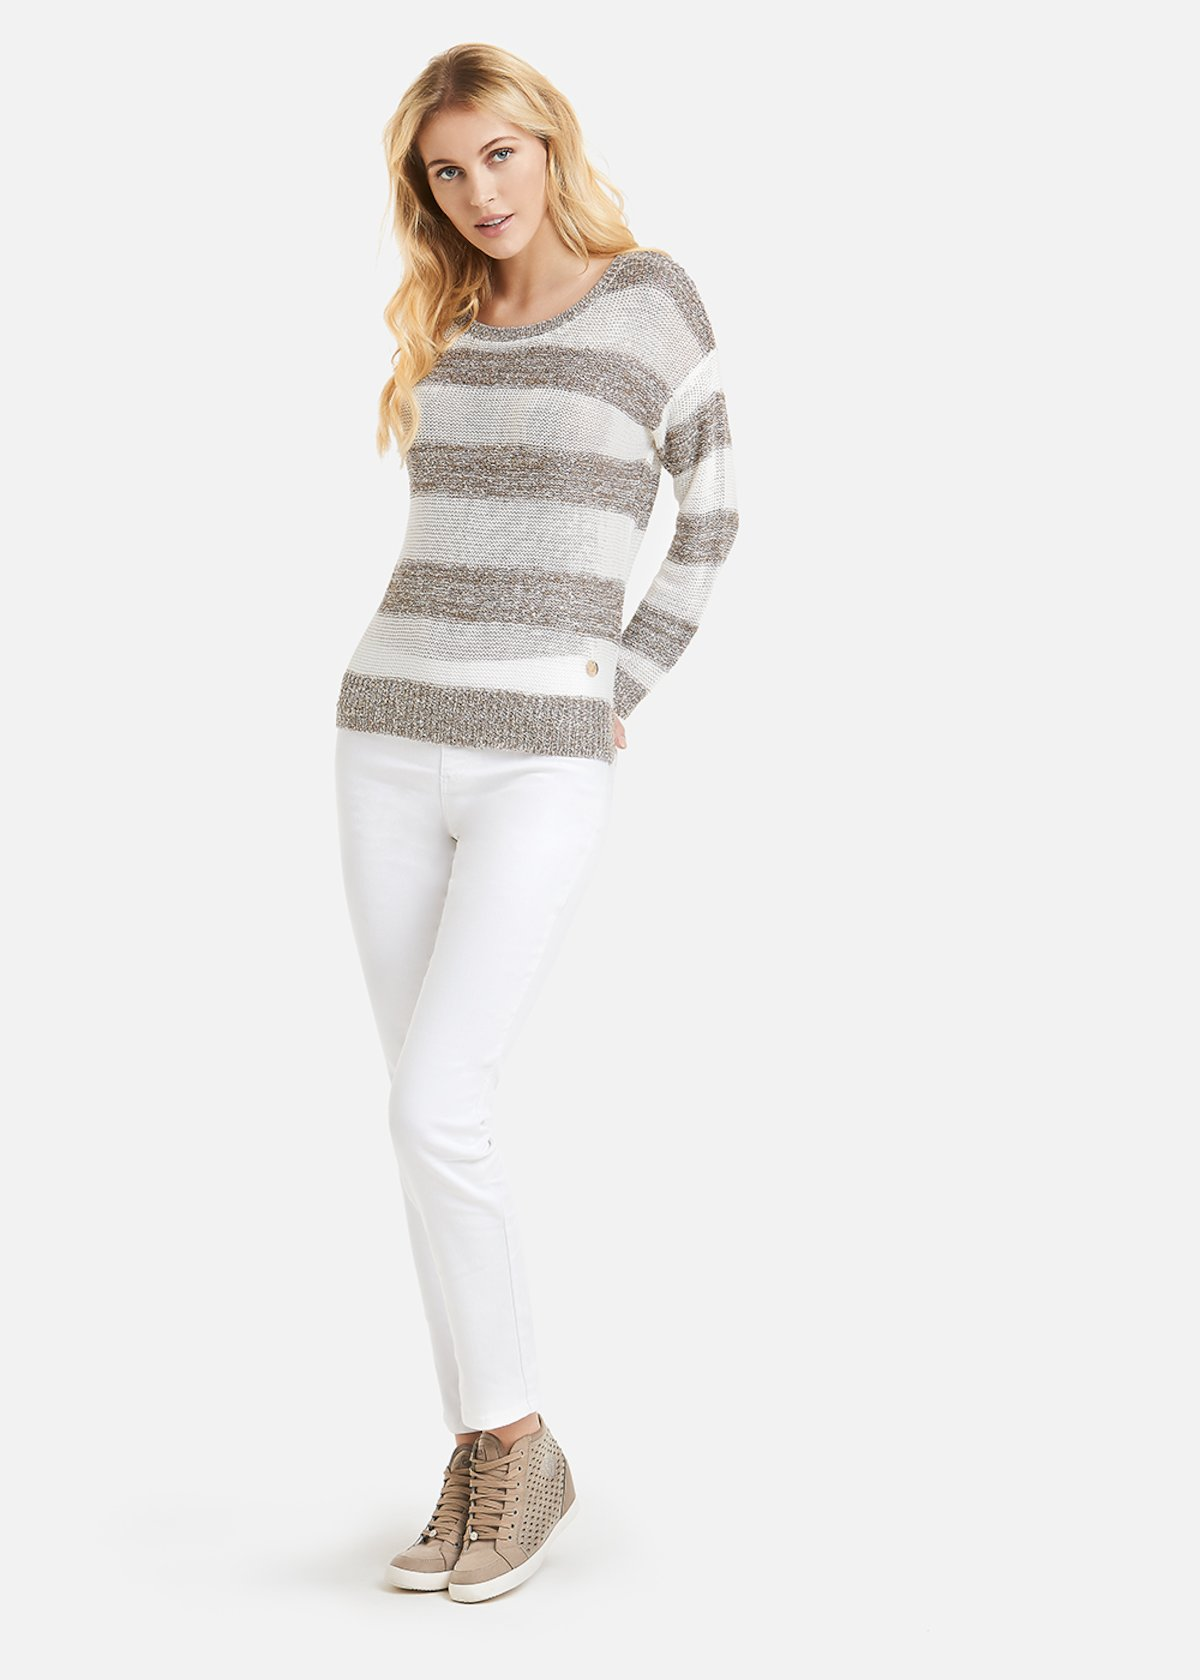 Melany sweater stripe fantasy with sequins - Desert / White Stripes